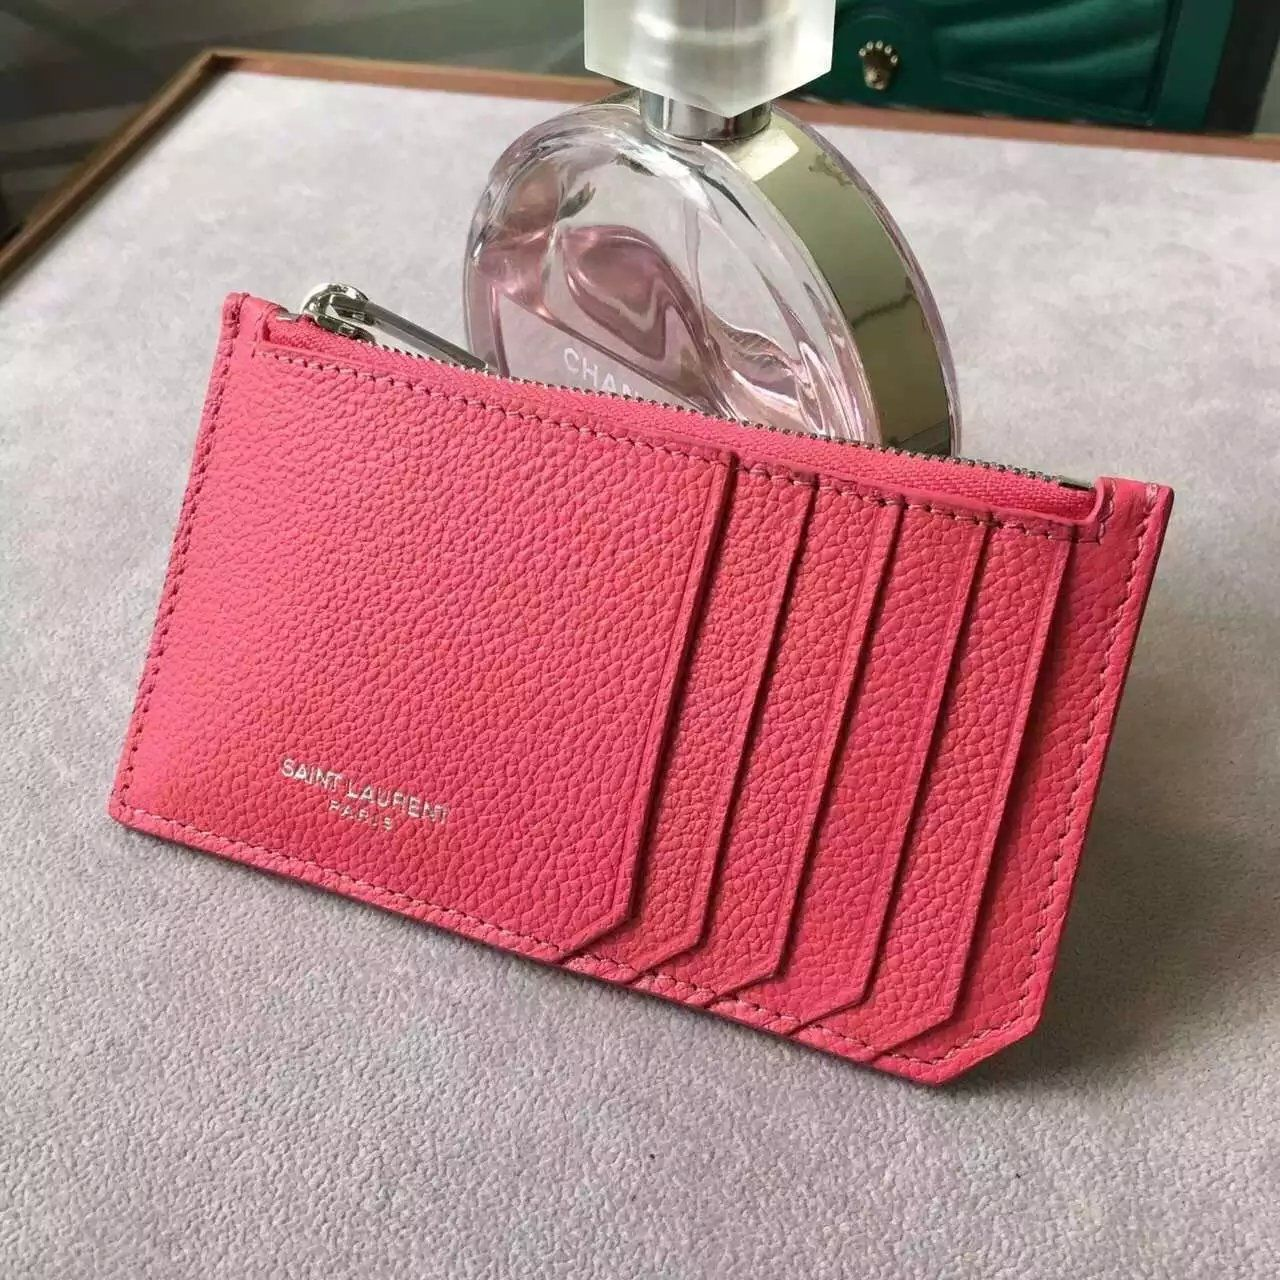 ca803ea2 Limited Edition!2016 New Saint Laurent Small Leather Goods Cheap ...